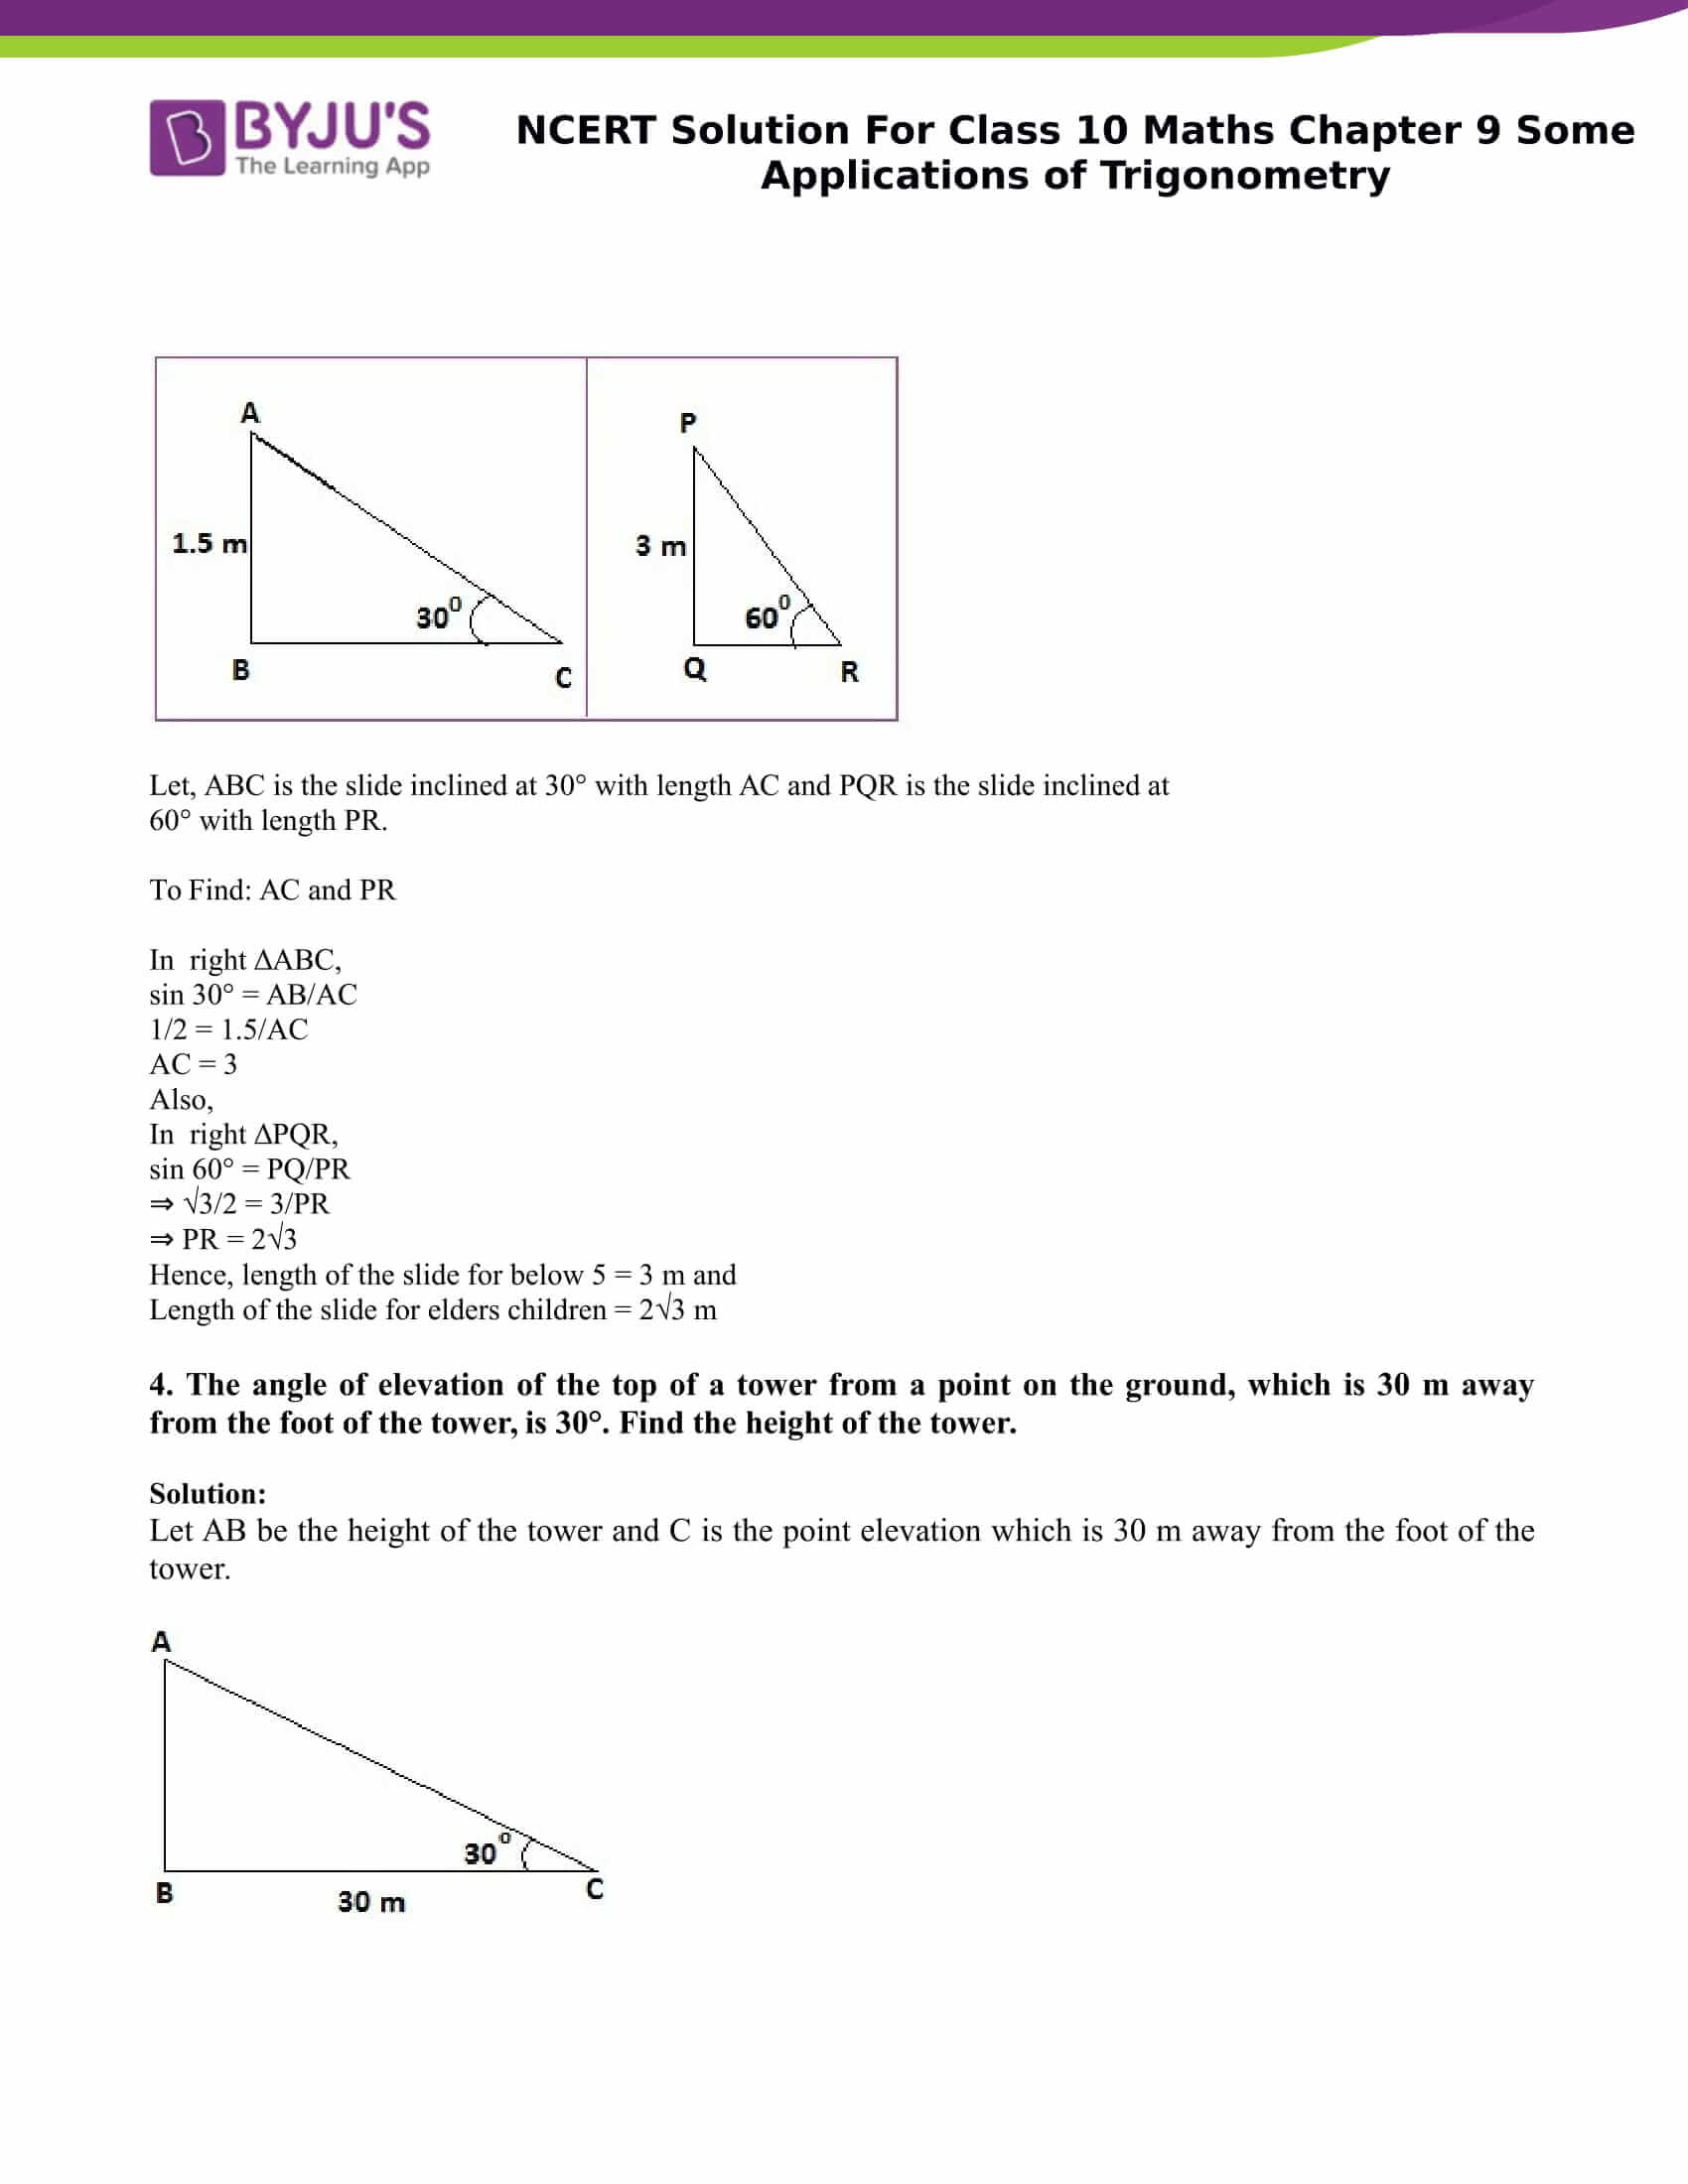 NCERT Solution for class 10 Maths Chapter 9 Some Applications of Trigonometry Part 3